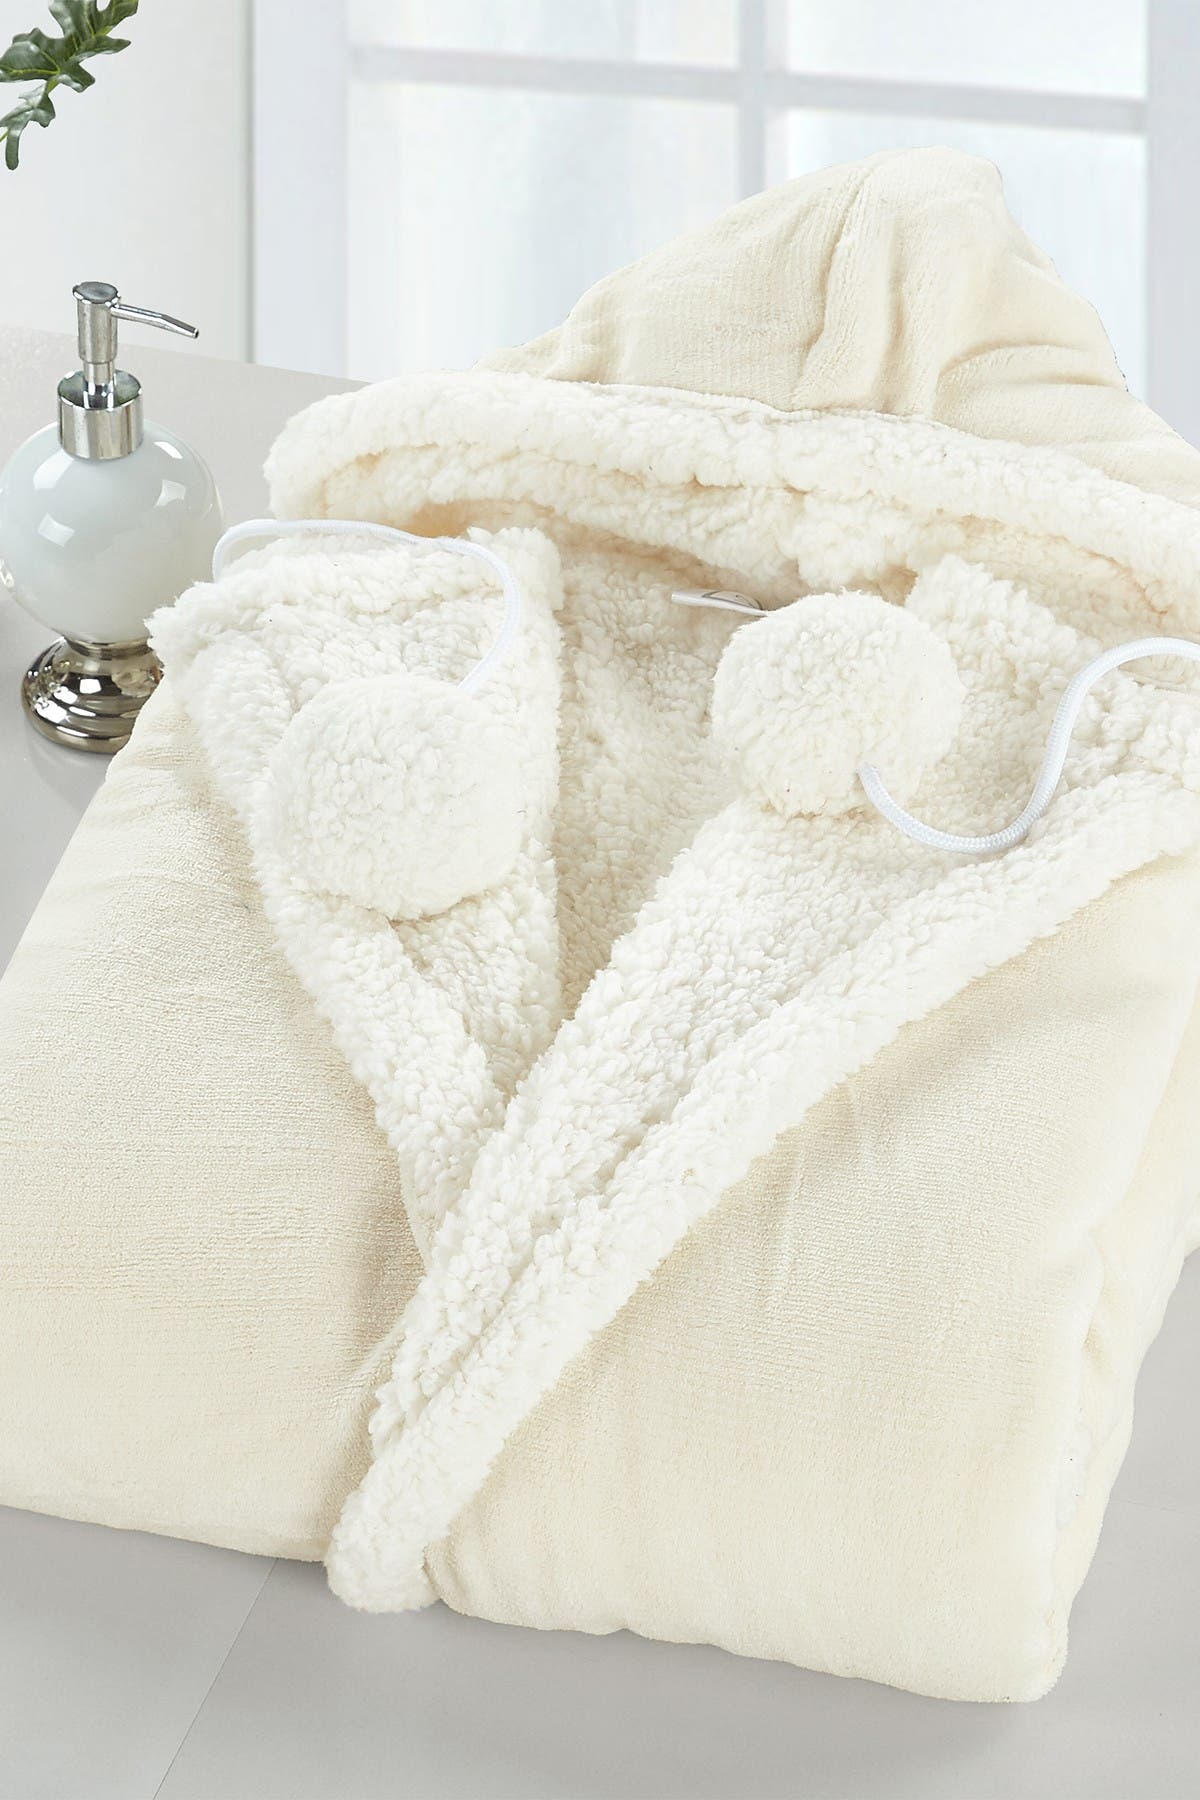 Image of Chic Home Bedding Yatco Faux Shearling Lined Snuggle Hoodie - Beige